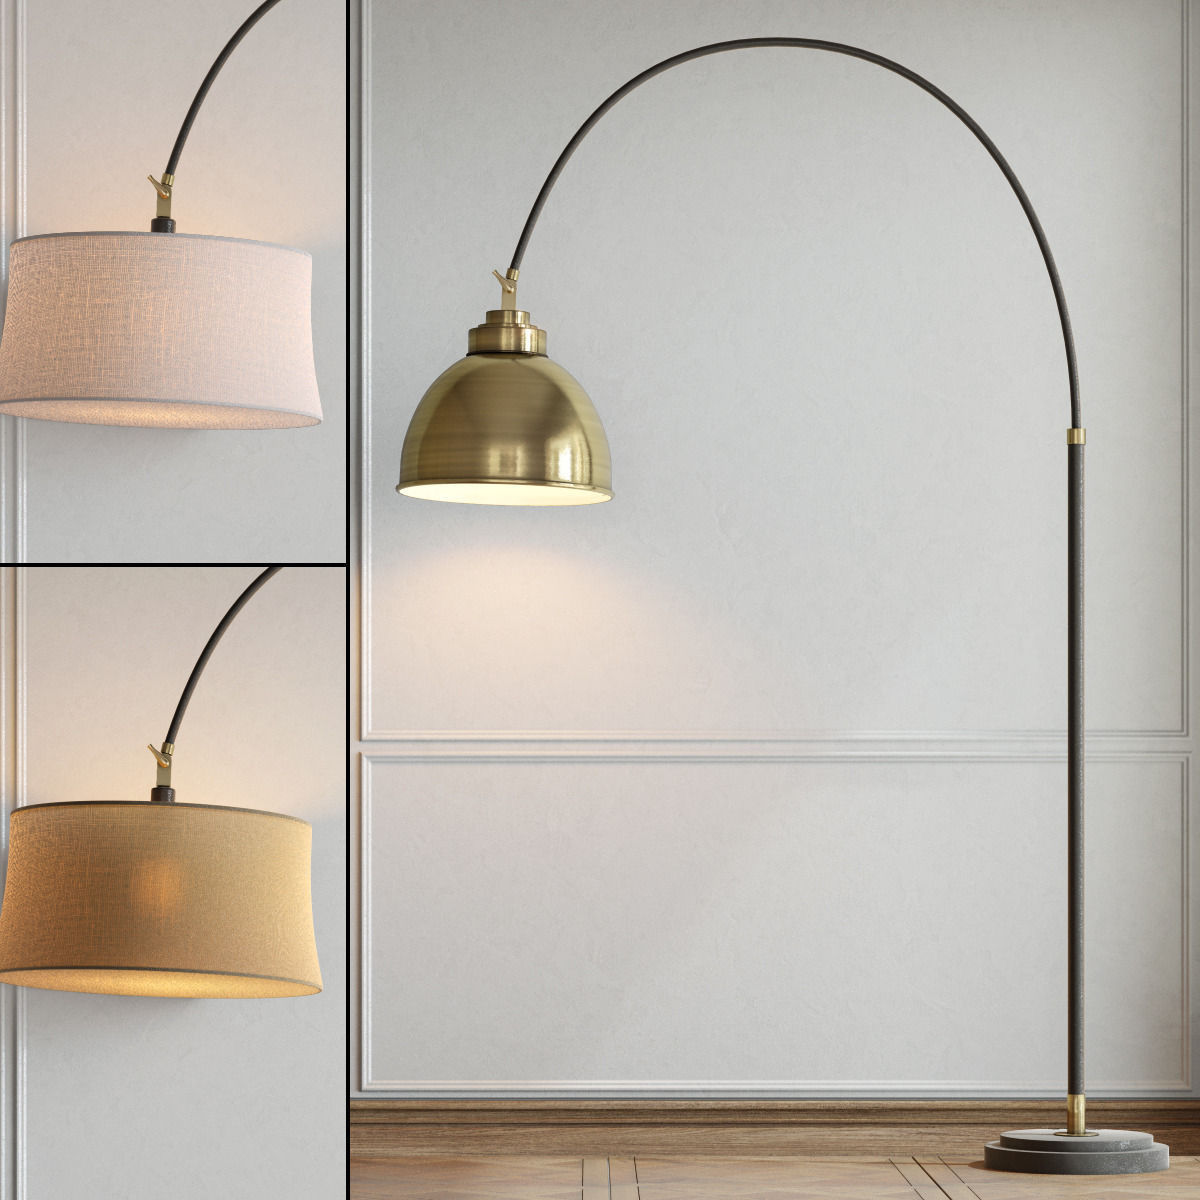 Pottery Barn Winslow Arc Sectional Floor Lamp 3d Model Max